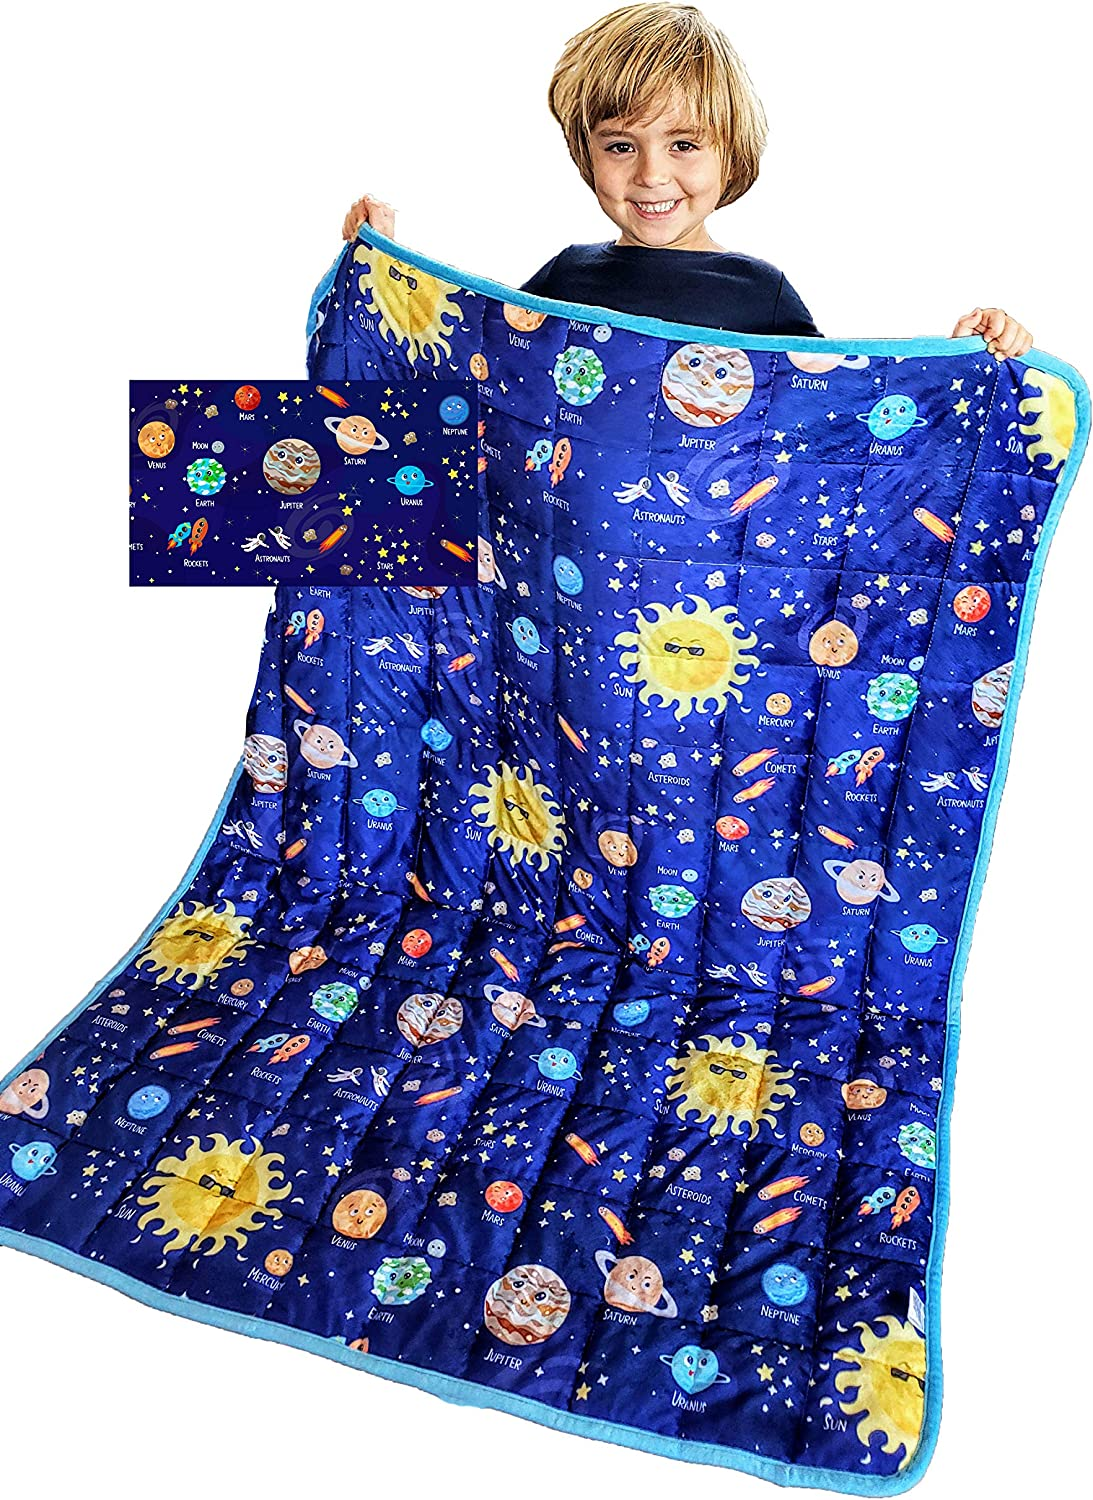 Solar system weighted blanket